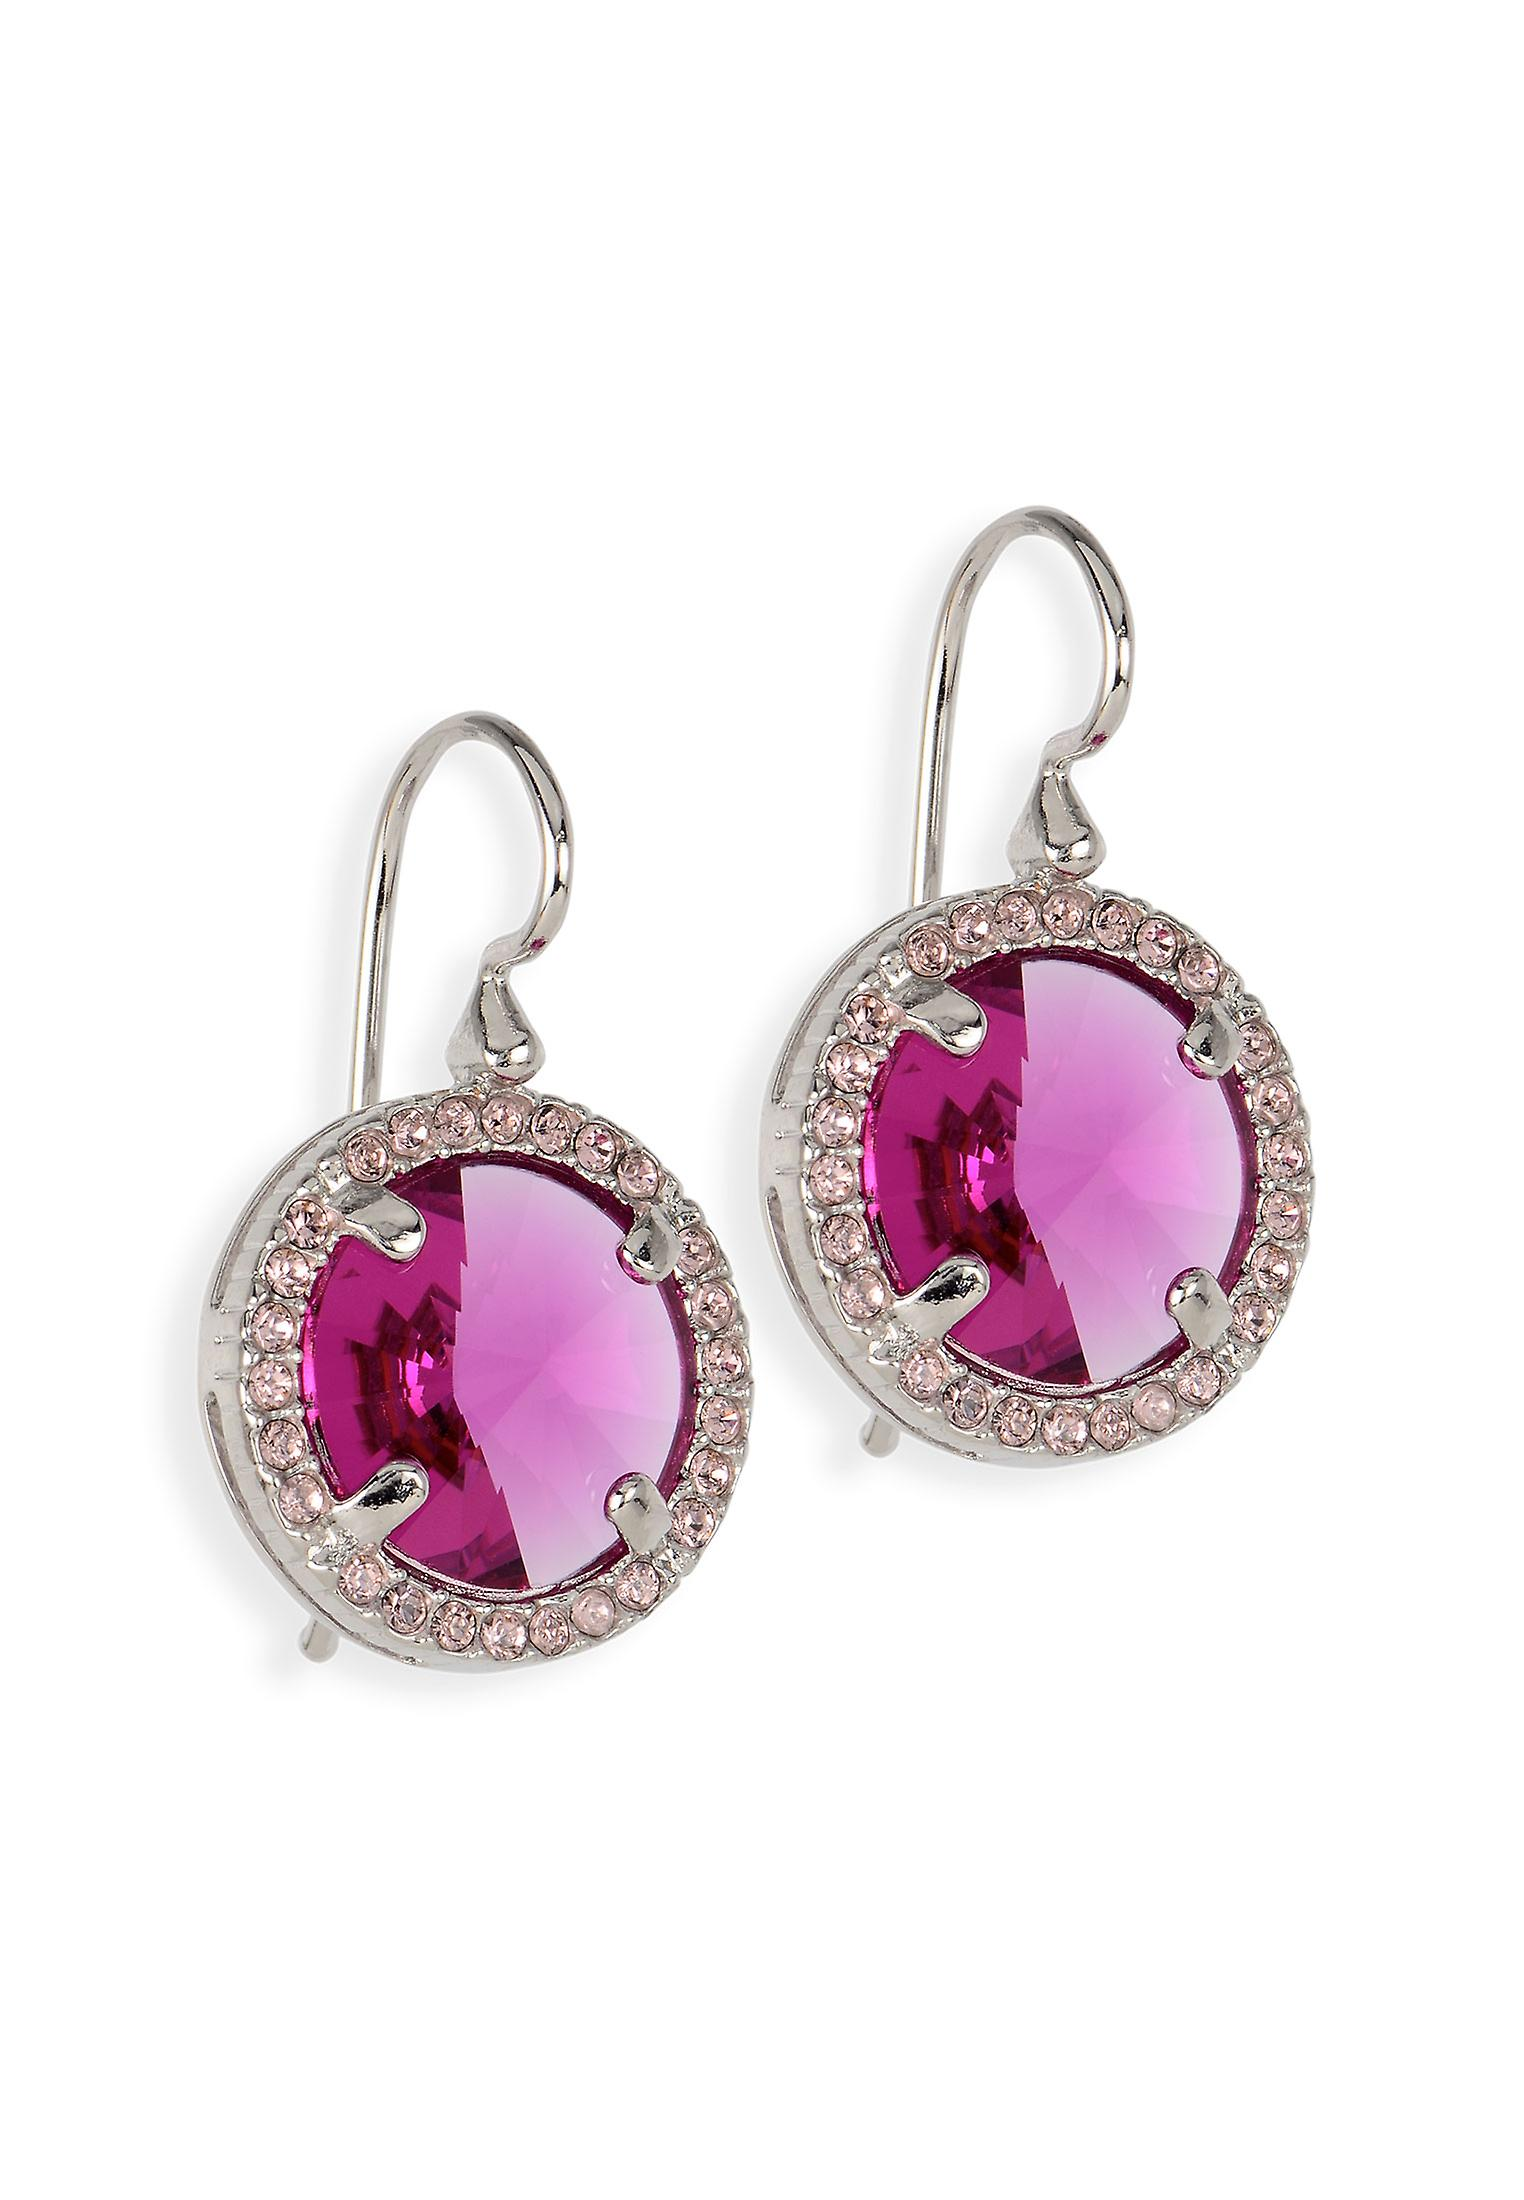 Pink earrings with crystals from Swarovski 402